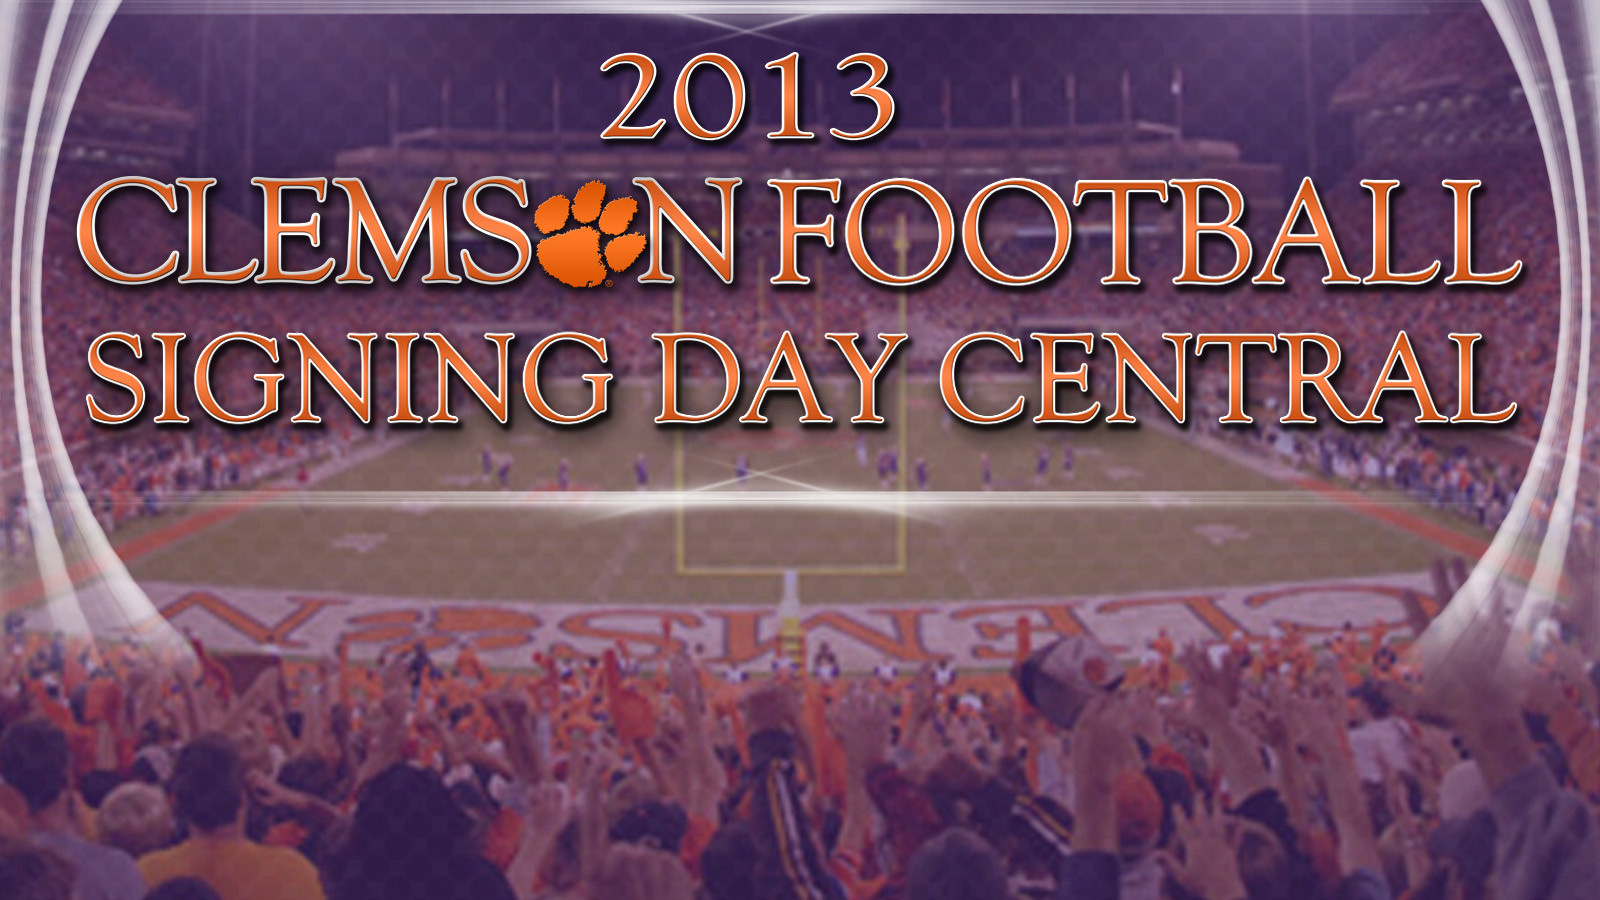 Clemson Football: 2013 Signing Day Central